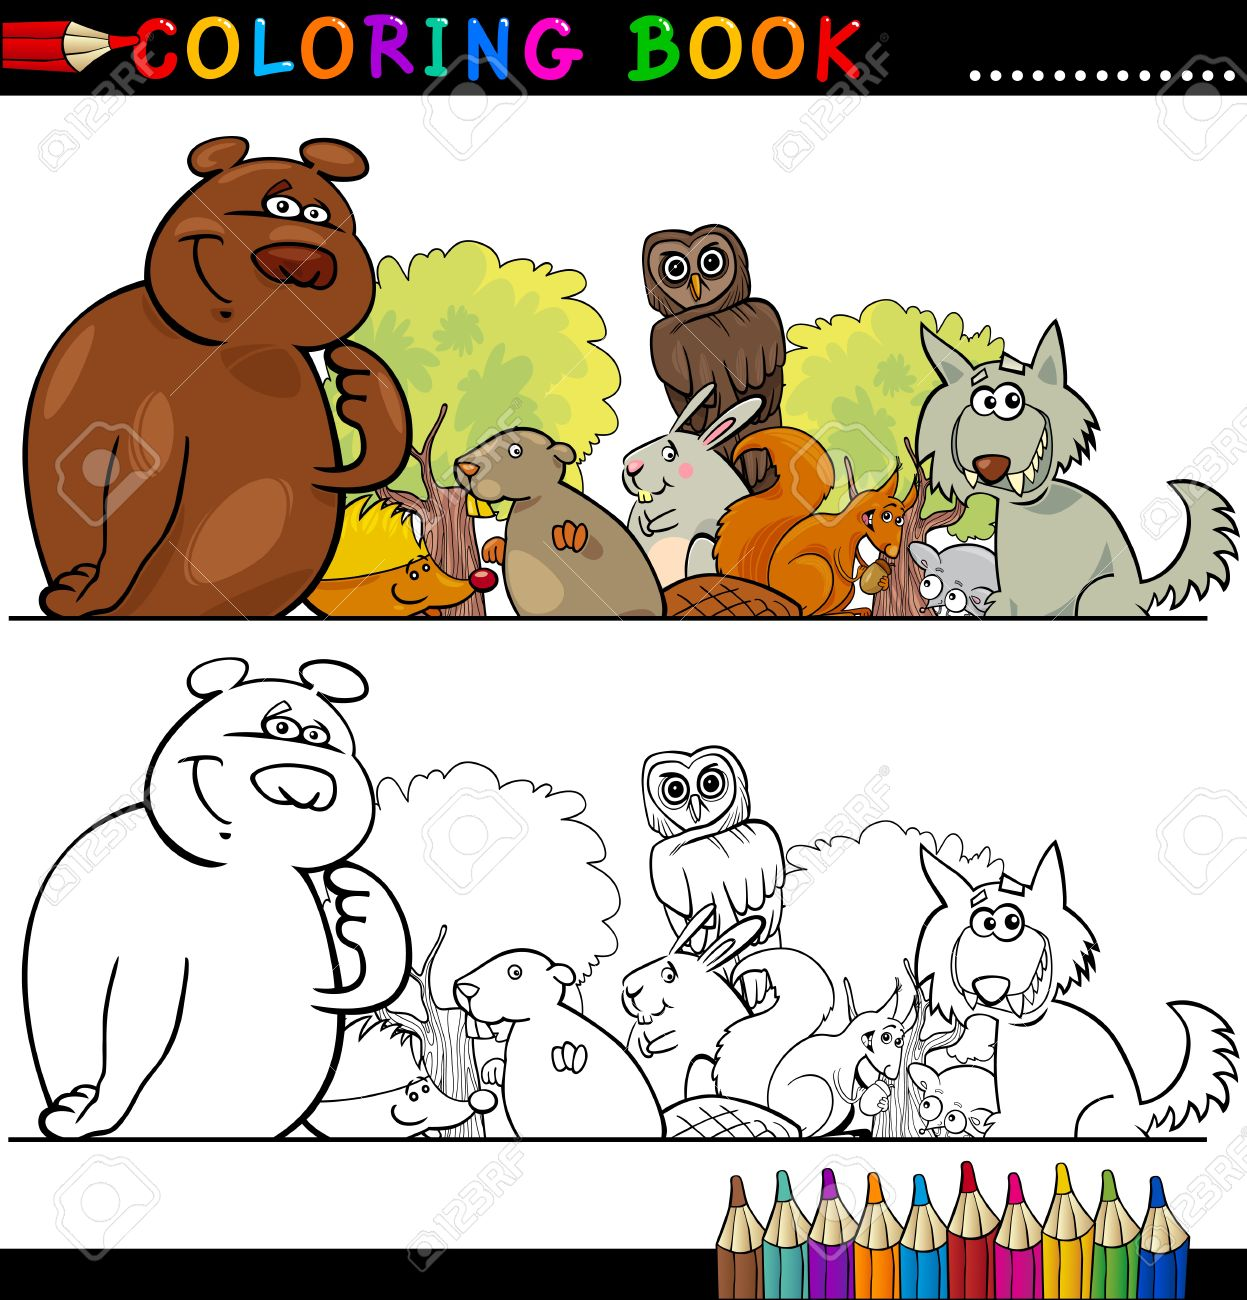 Coloring Book or Page Cartoon Illustration of Funny Wild Animals for Children Education Stock Vector - 15076959